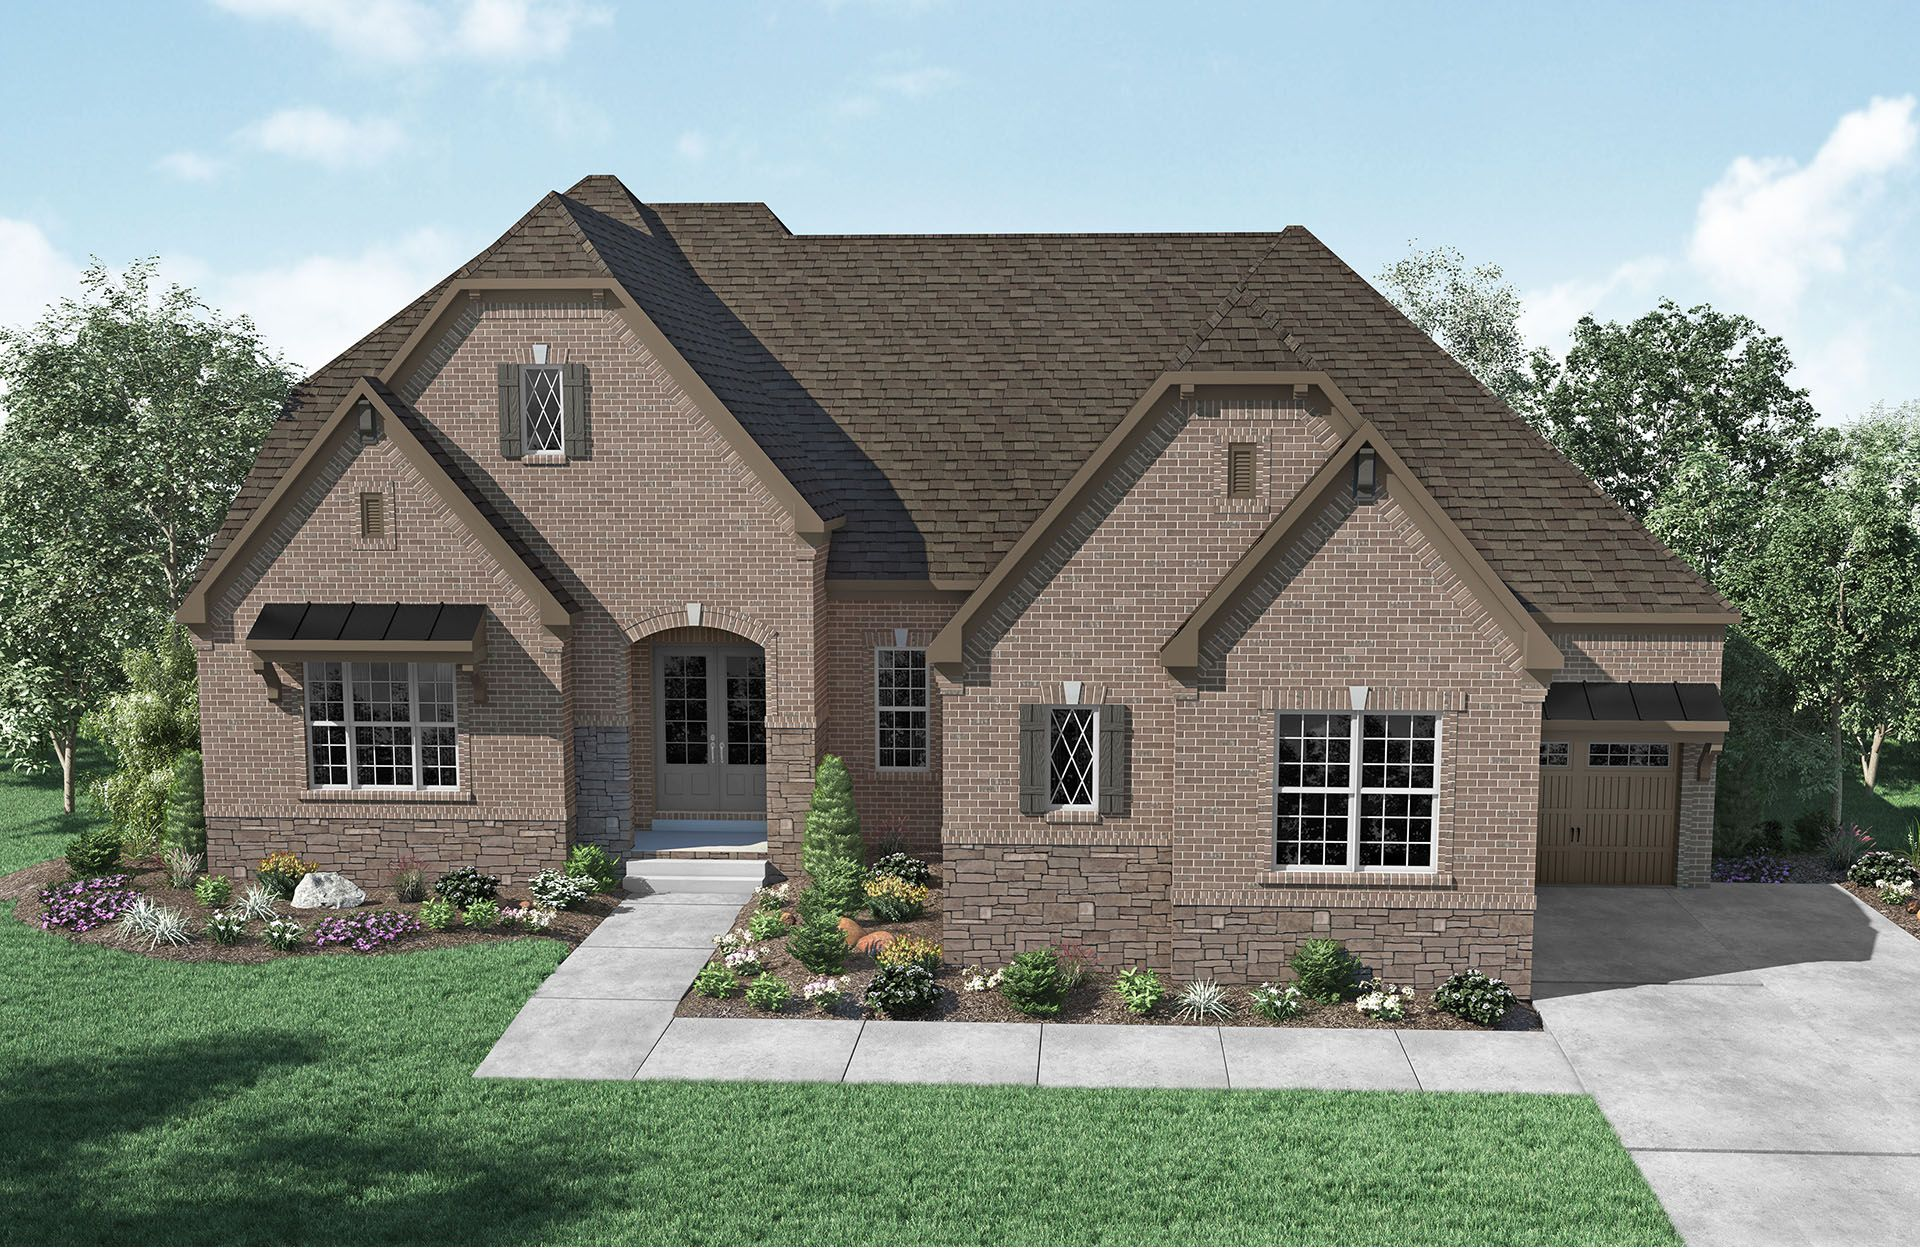 Single Family for Active at Traditions - Camden Carnival Drive Brentwood, Tennessee 37027 United States